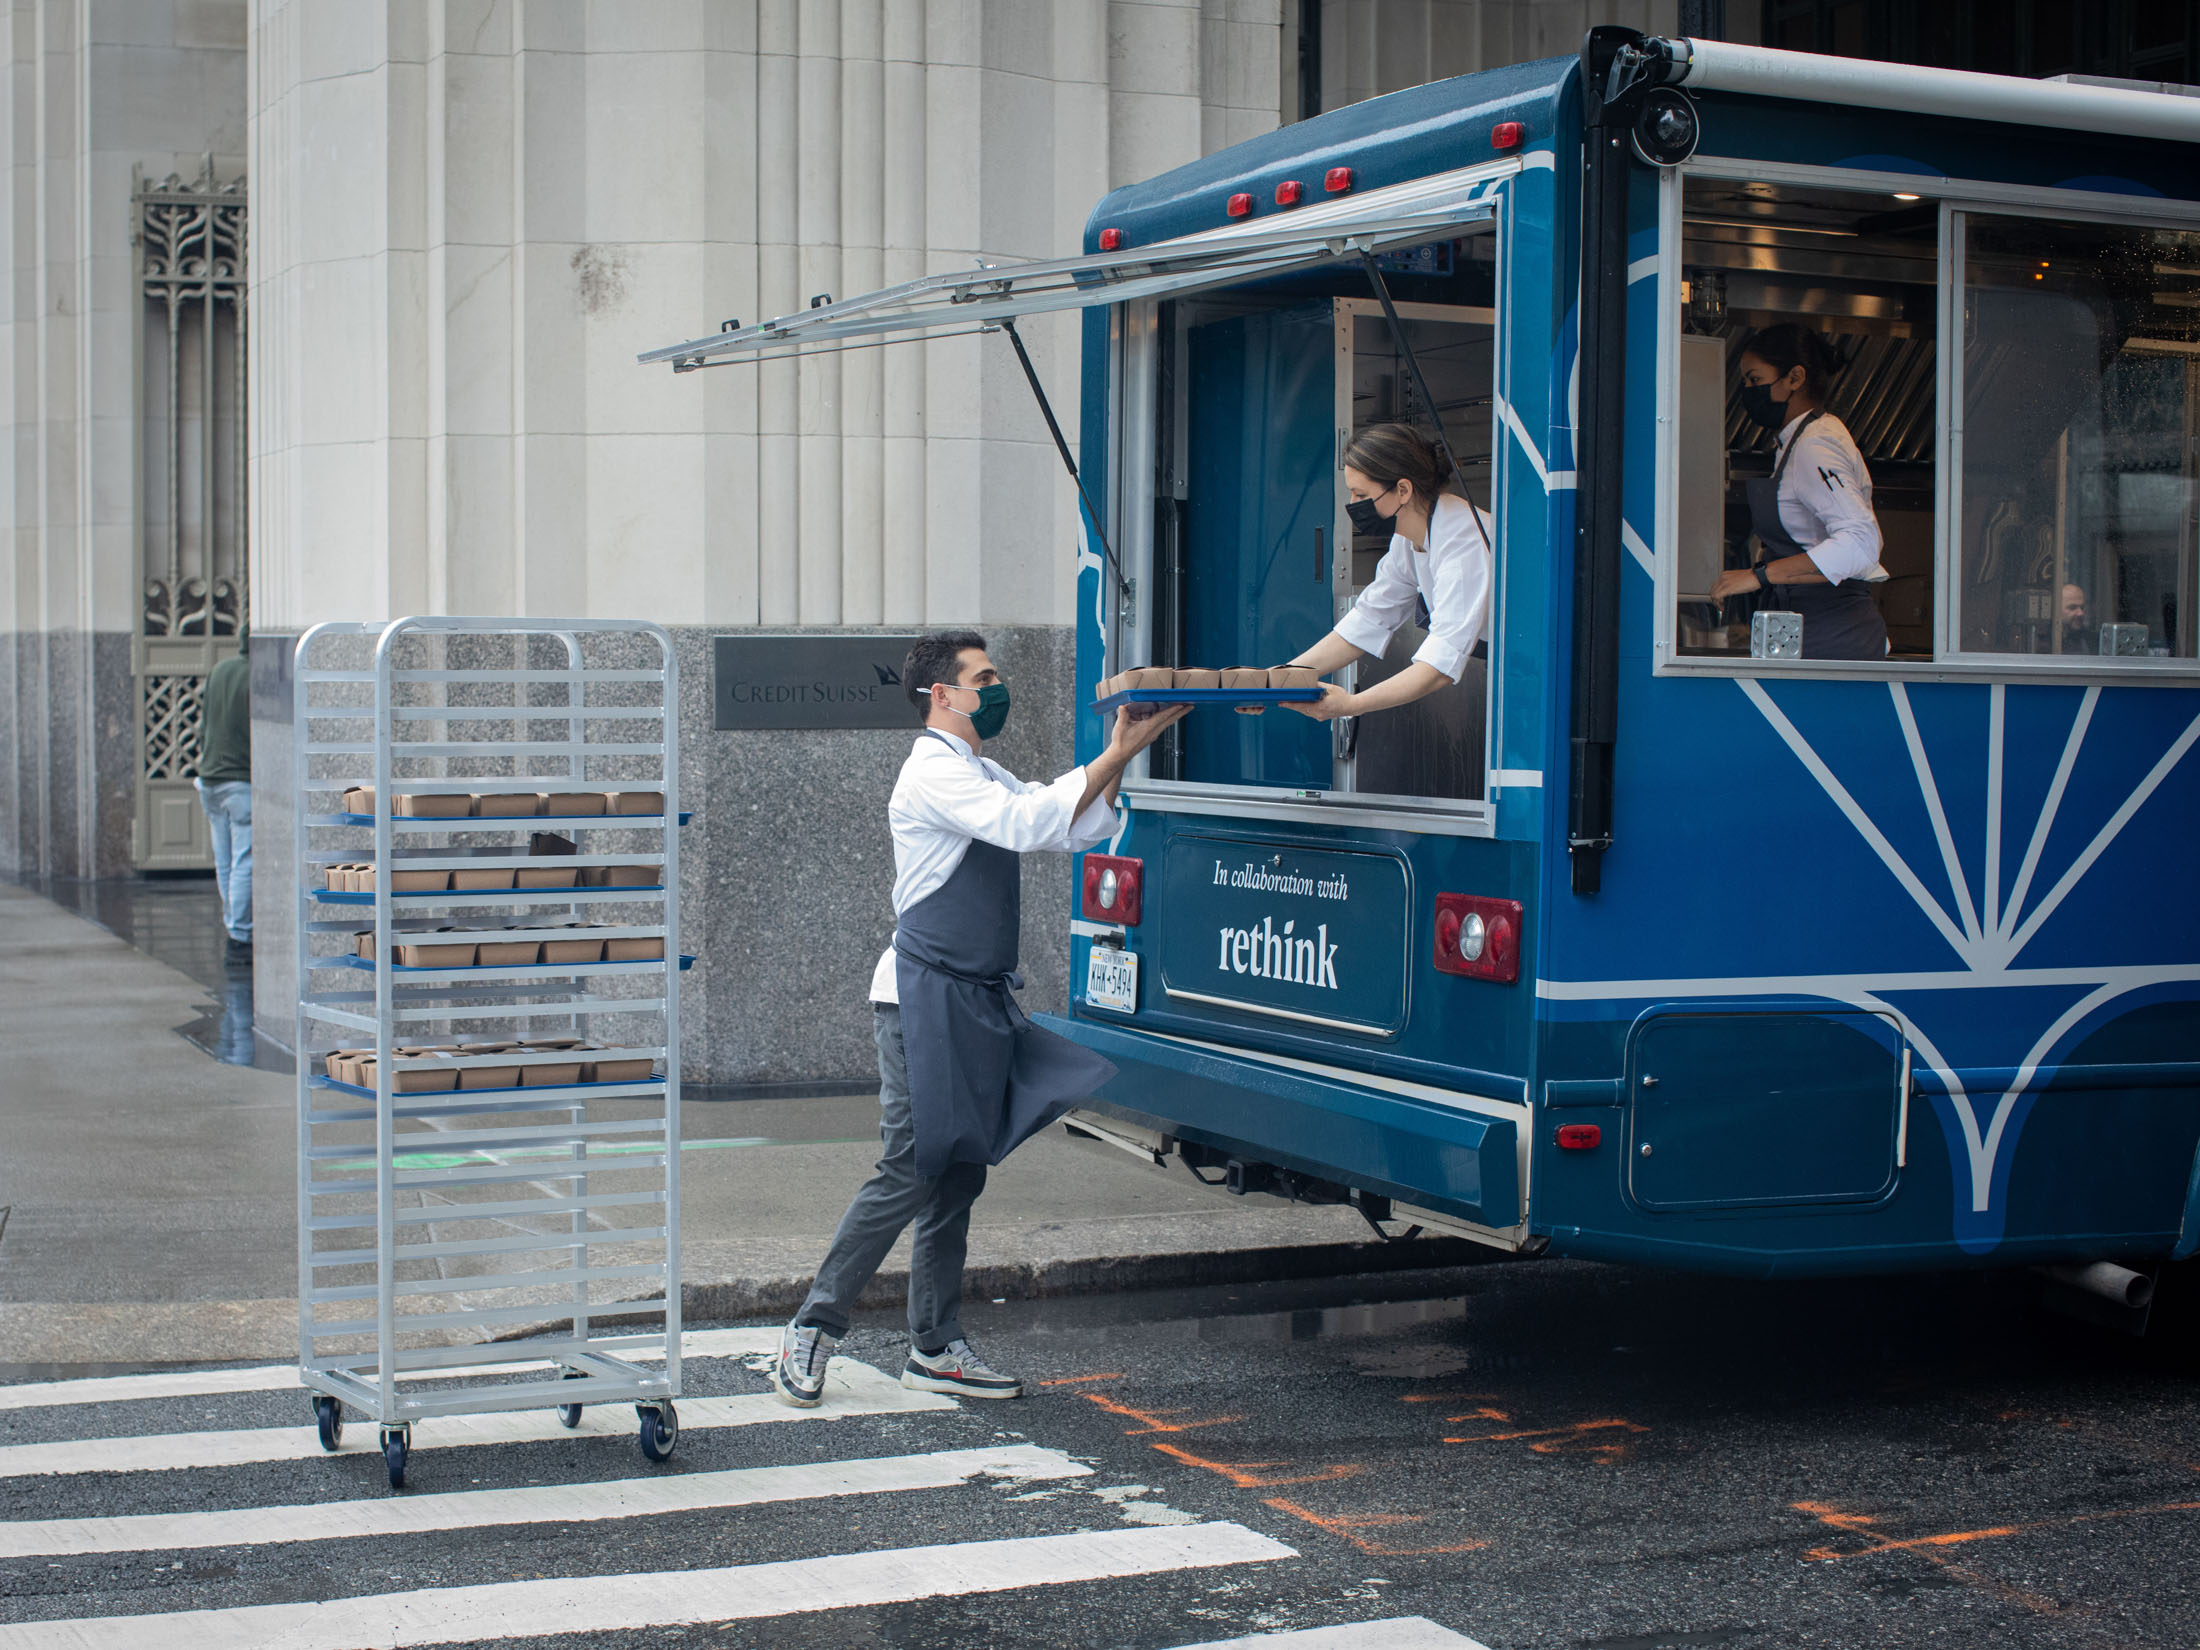 relates to A World's Best Restaurant Starts Food Truck Ahead of Reopening